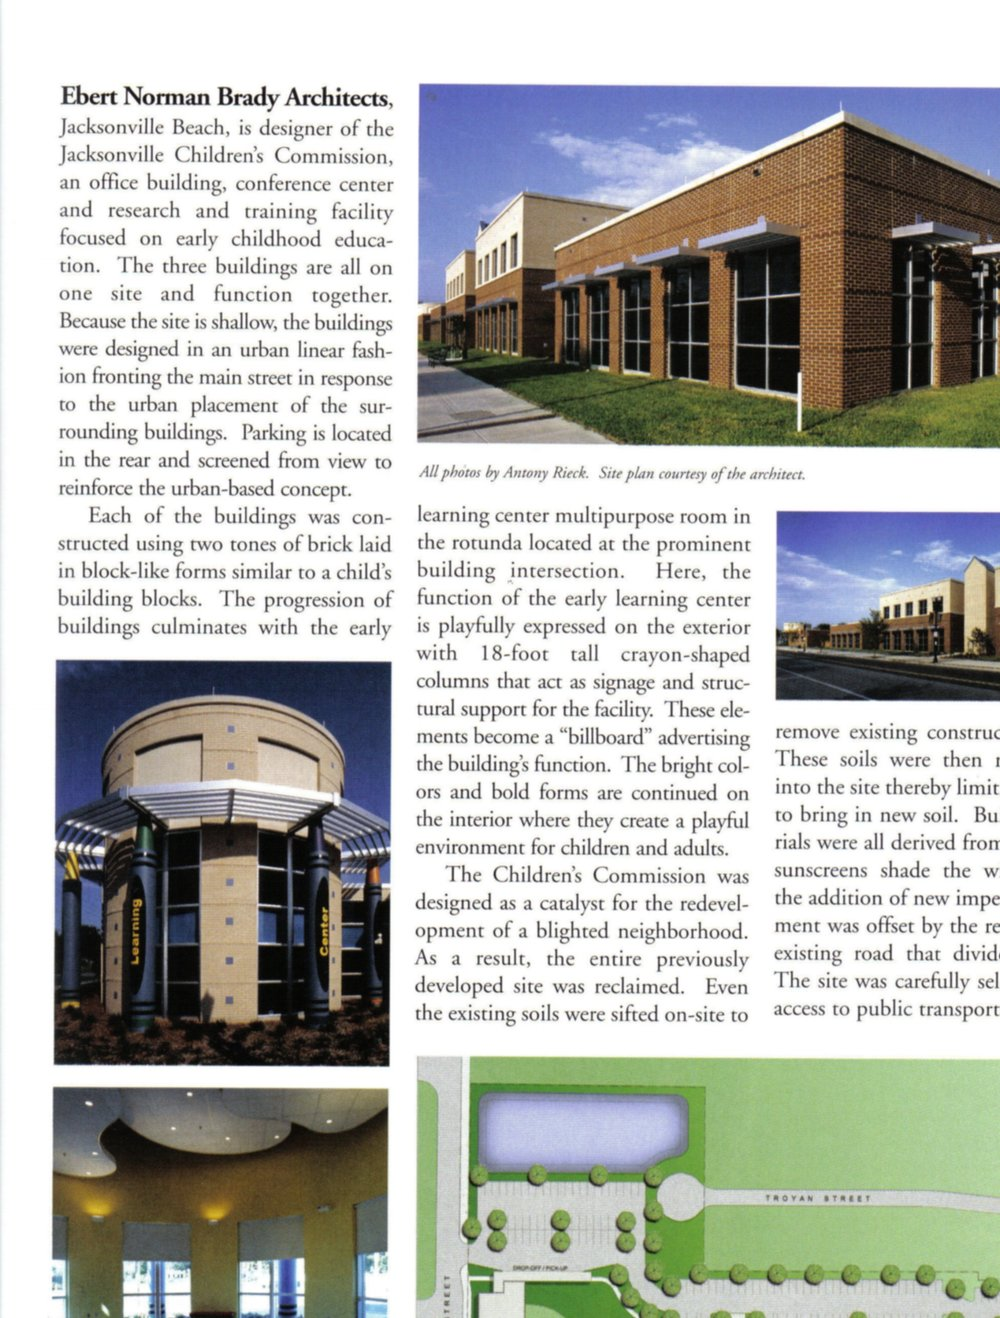 Florida Caribbean Architect Article - Jax Childrens Center.jpg